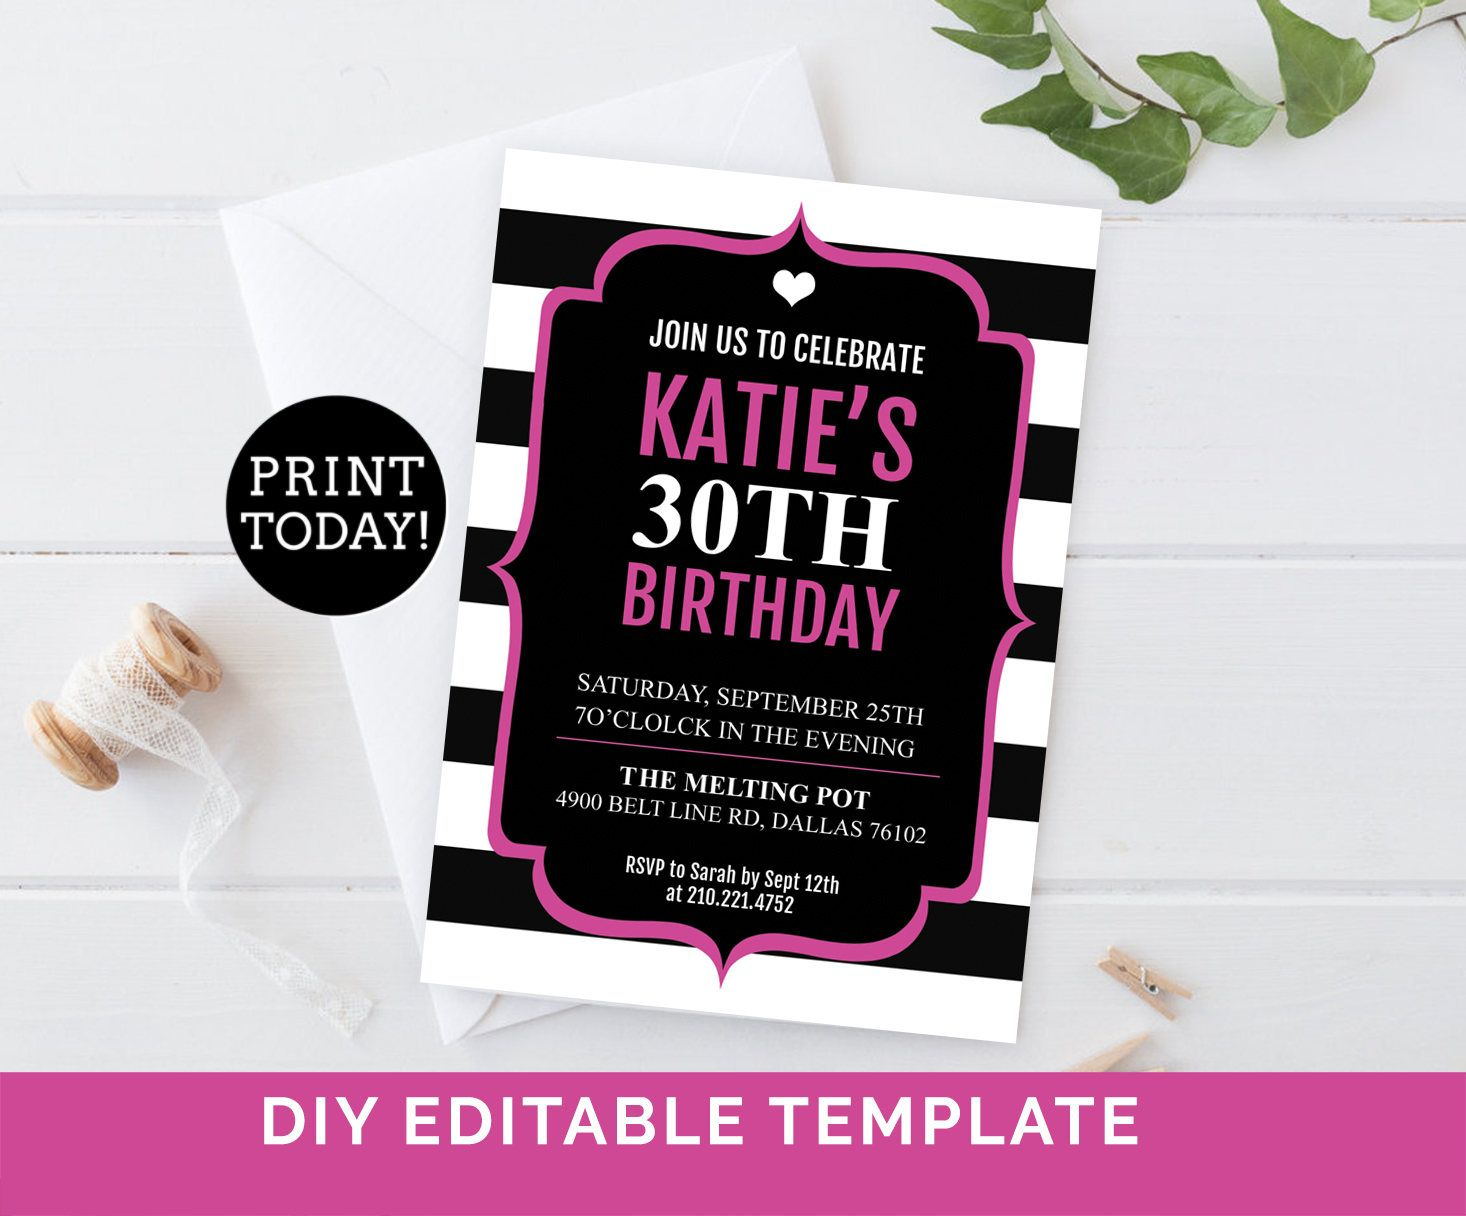 Kate 30th Birthday Invitation Template Adult Invites Stripe Hot Pink Party ANY EVENT Personalize Editable Printable By